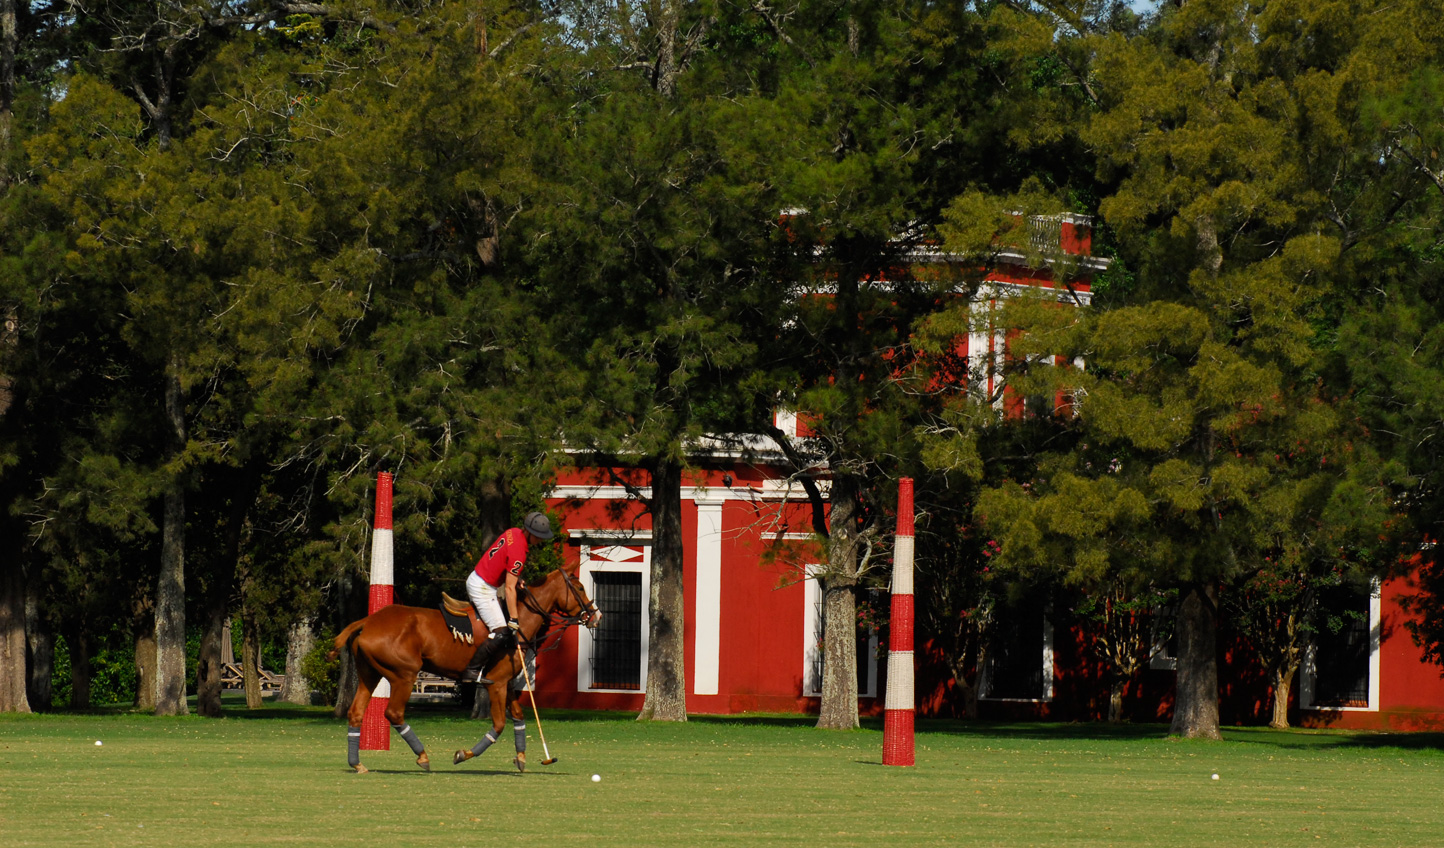 Visit during September and December and catch the Estancia's polo team in action